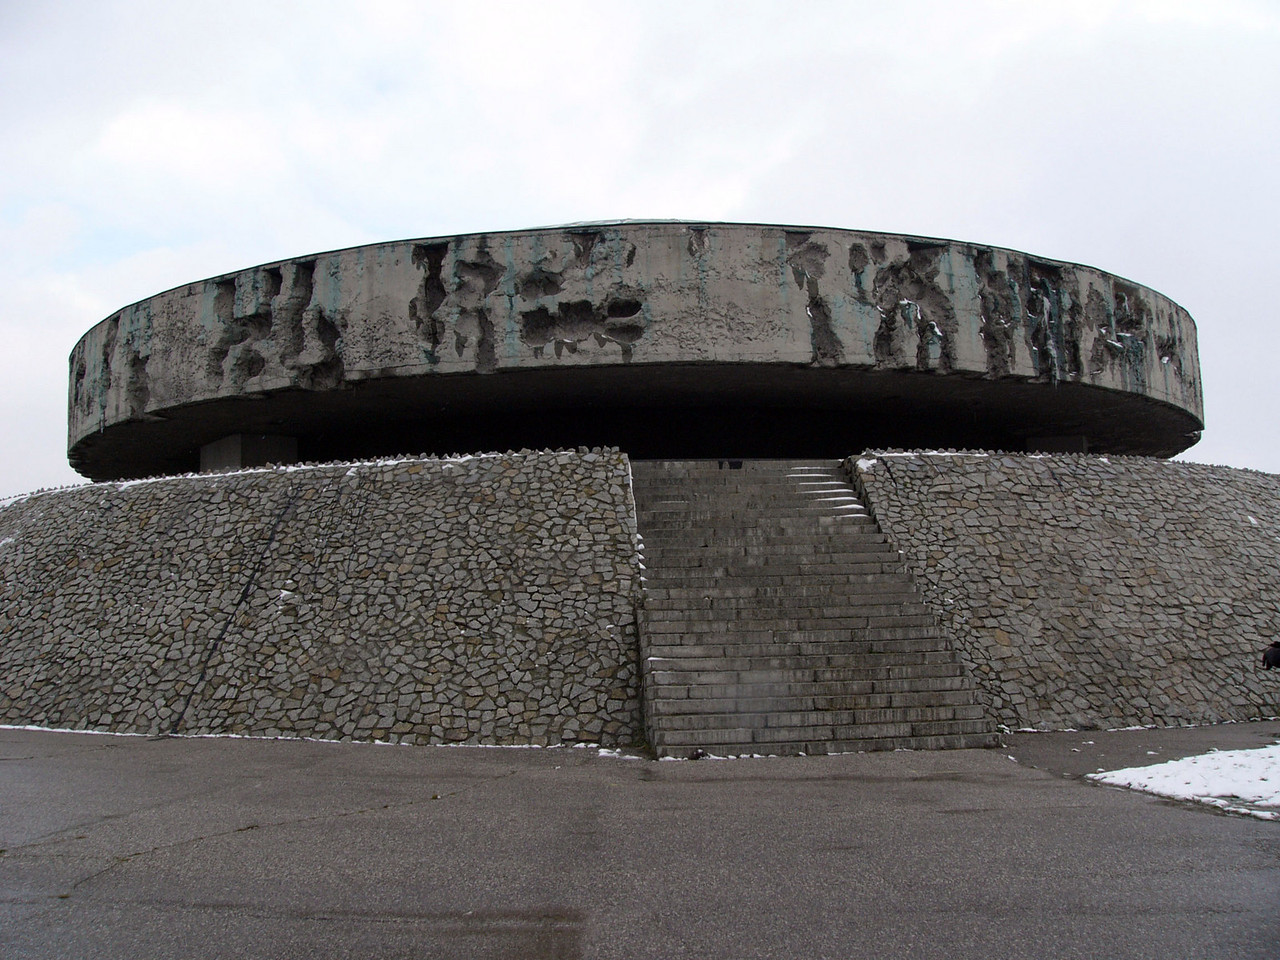 Mausoleum at Majdanek